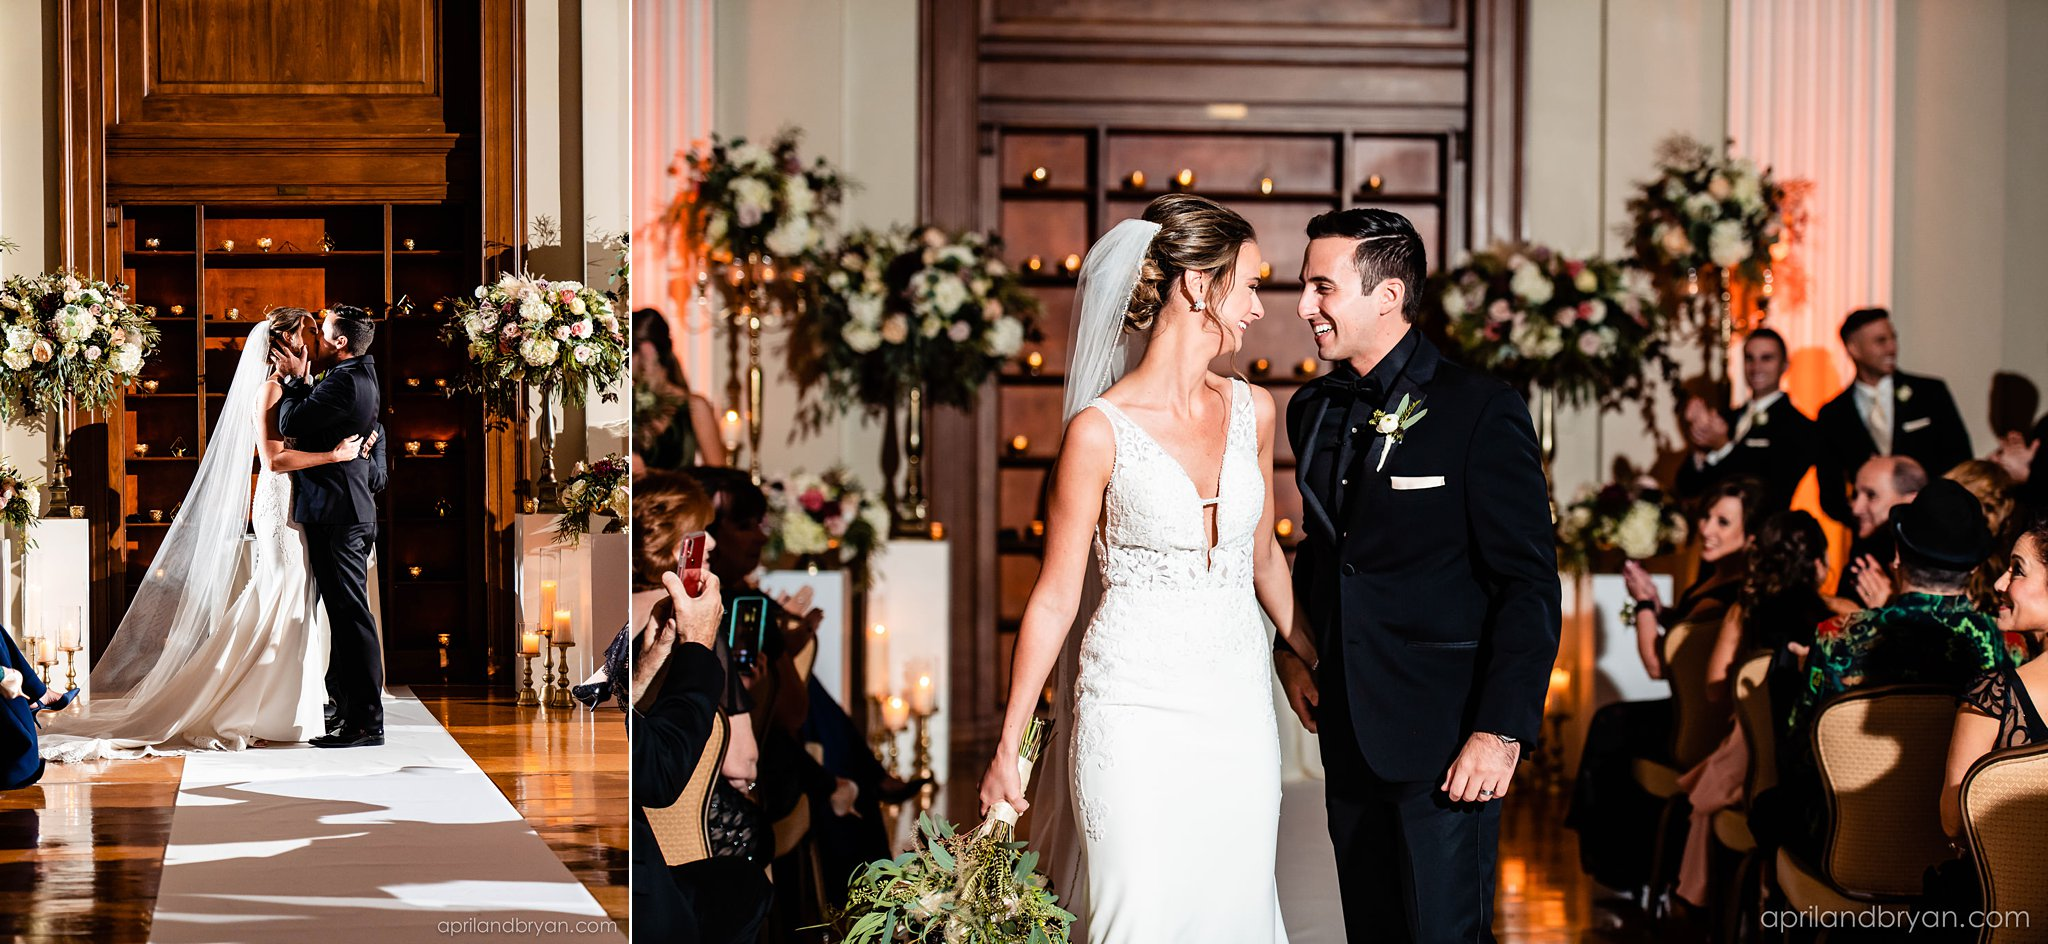 Franklin Institute Wedding Photographer